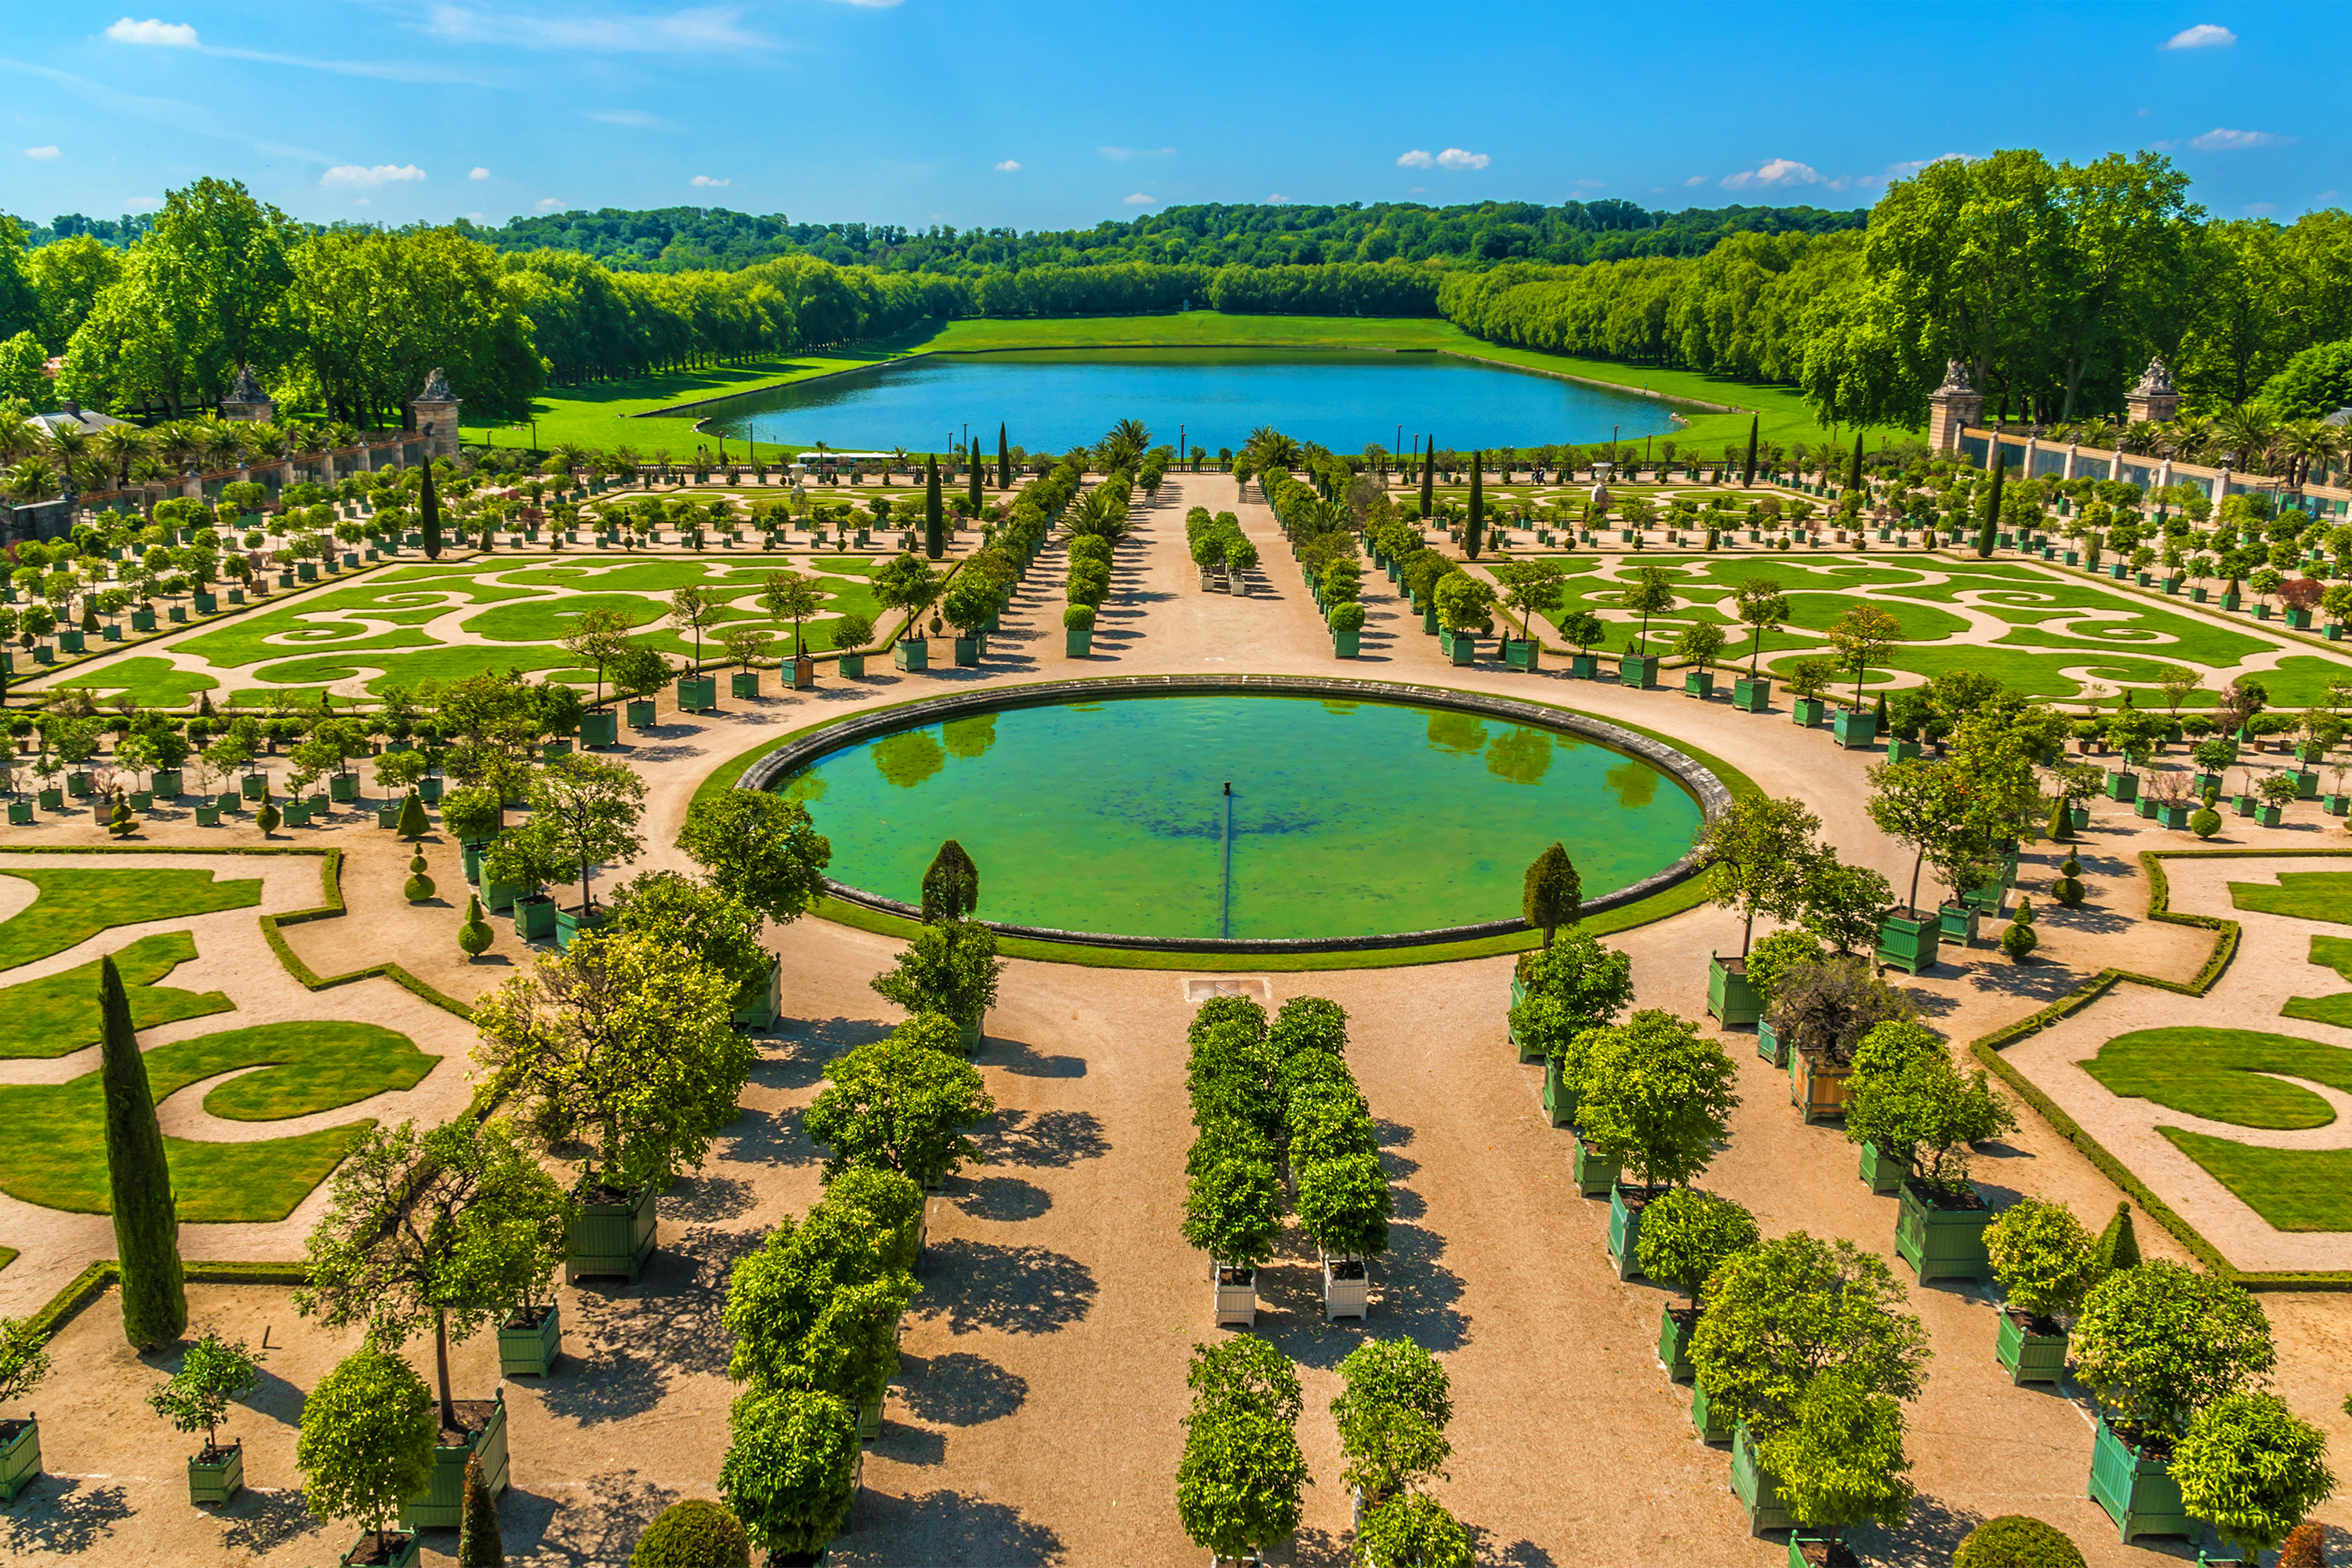 Monet's Garden & Treasures of Versailles Tour